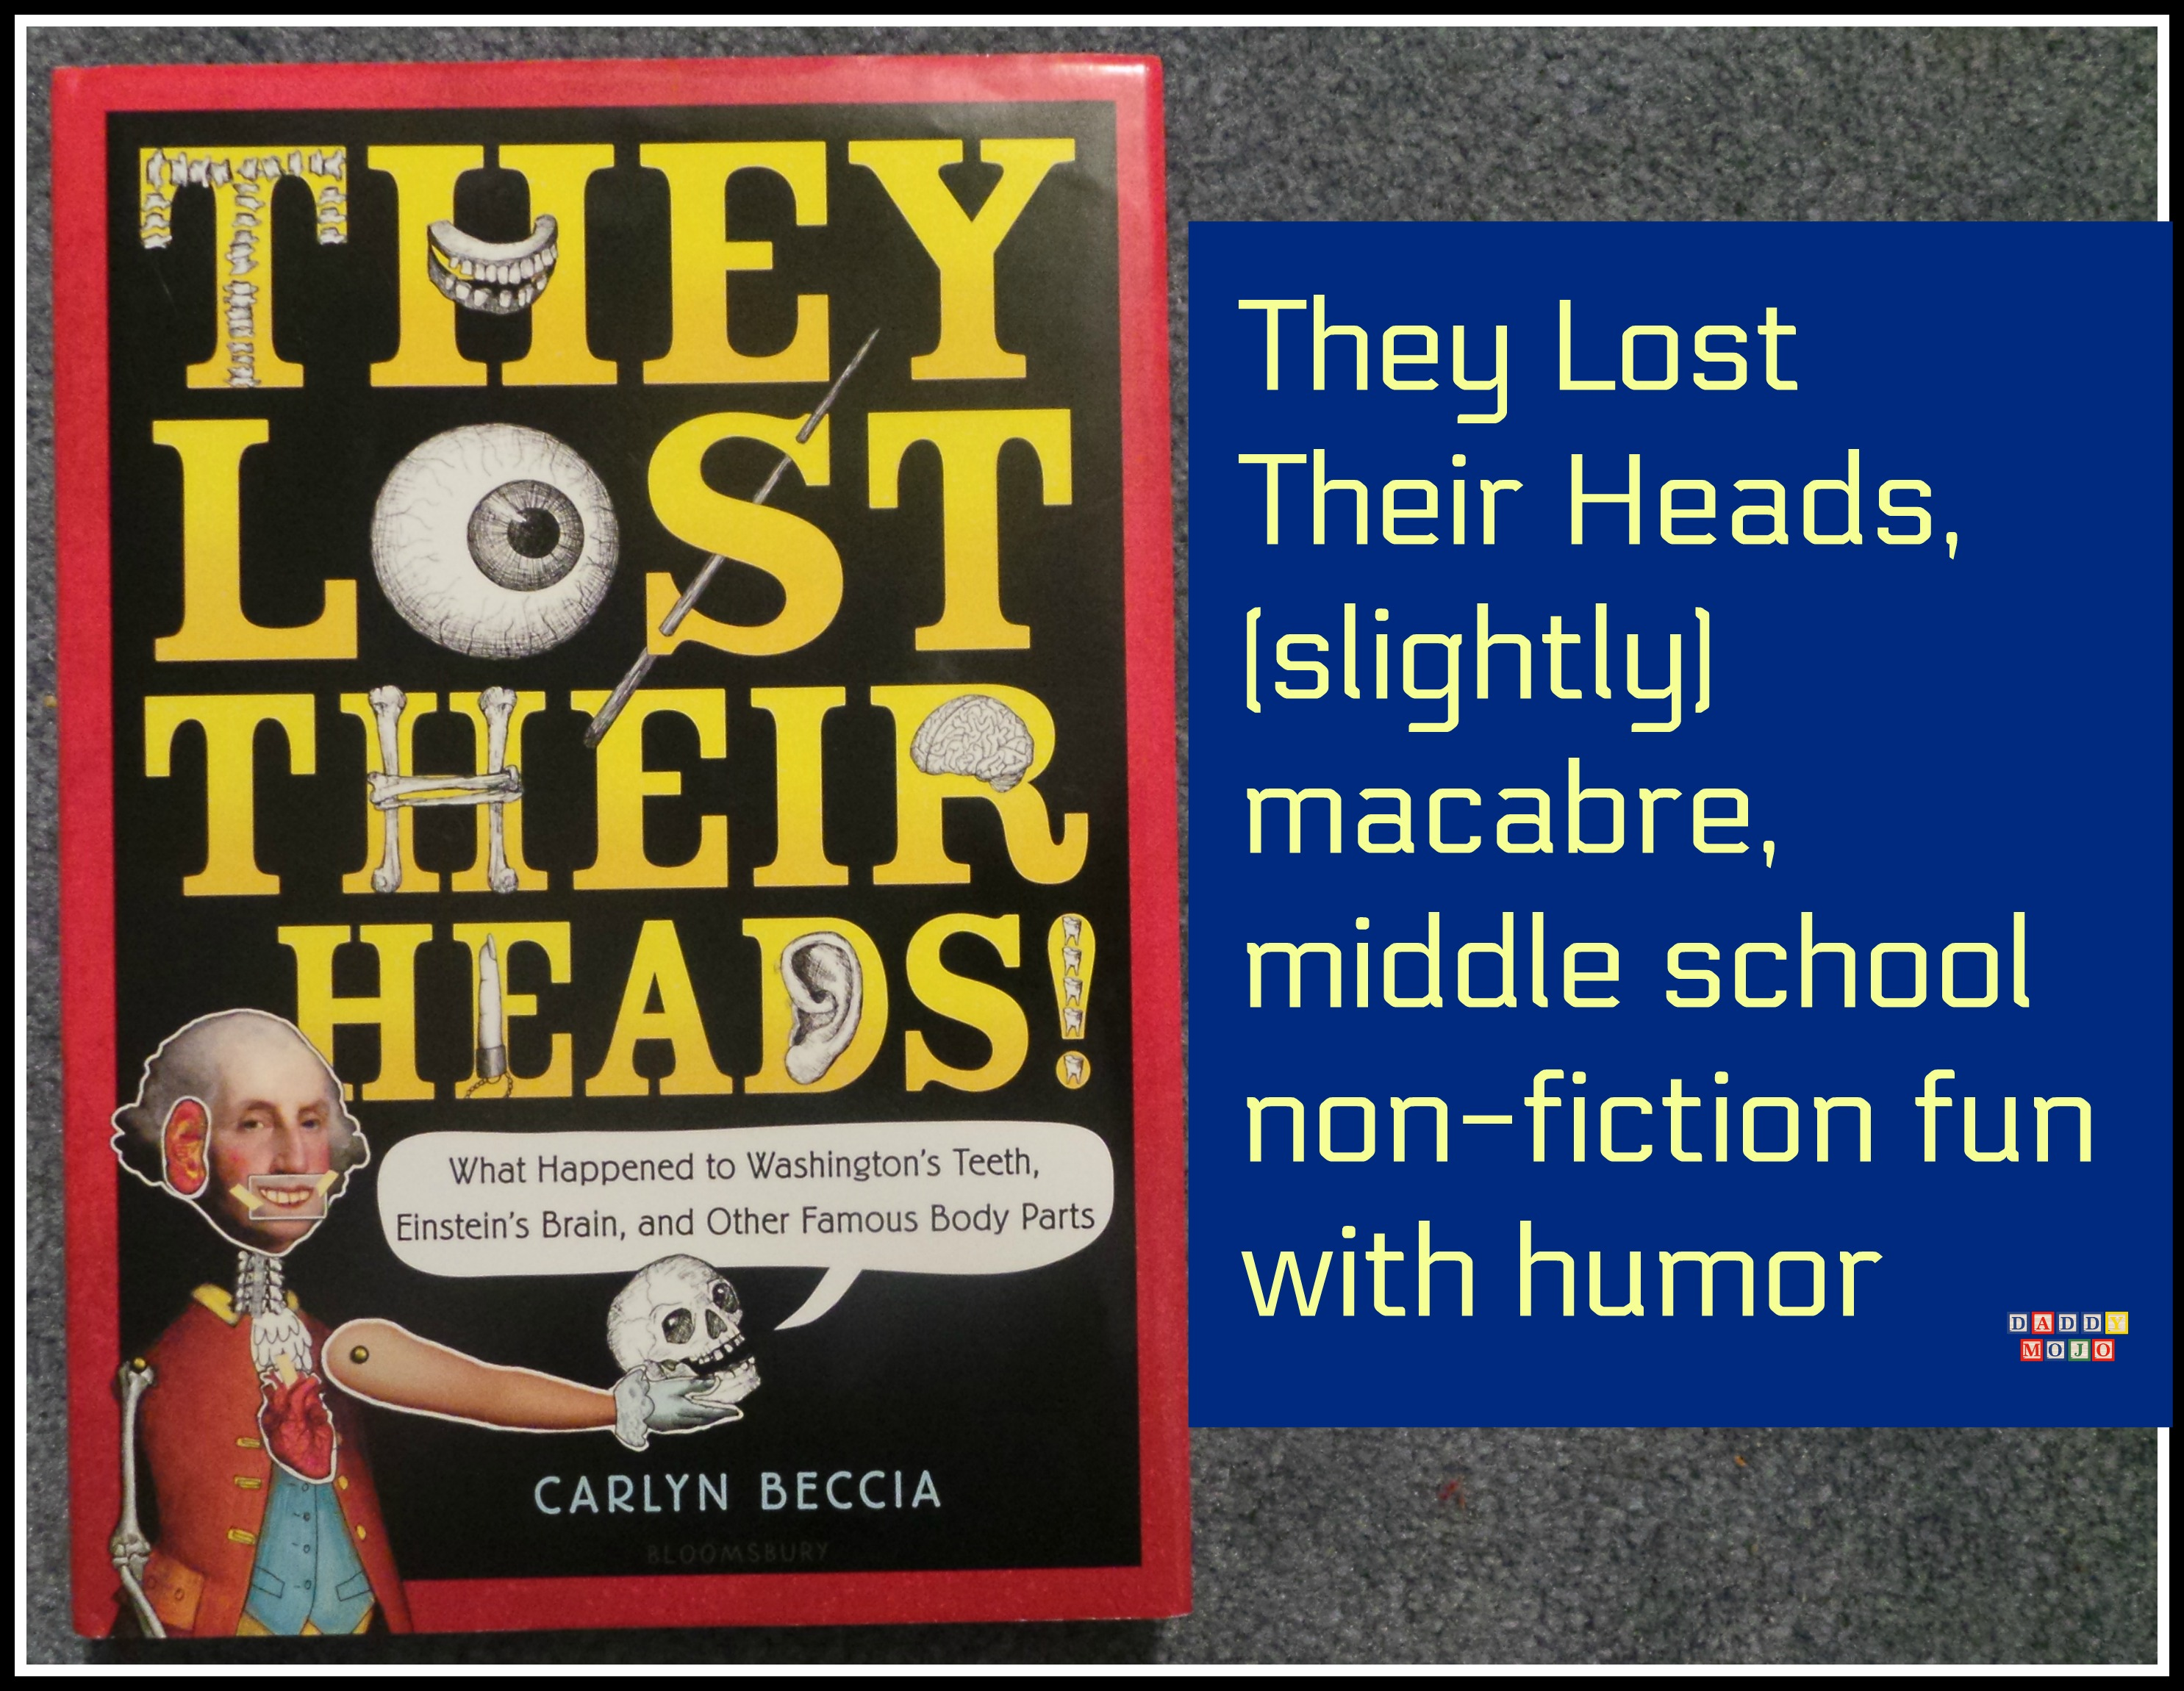 They Lost Their Heads Middle School Non Fiction Fun With